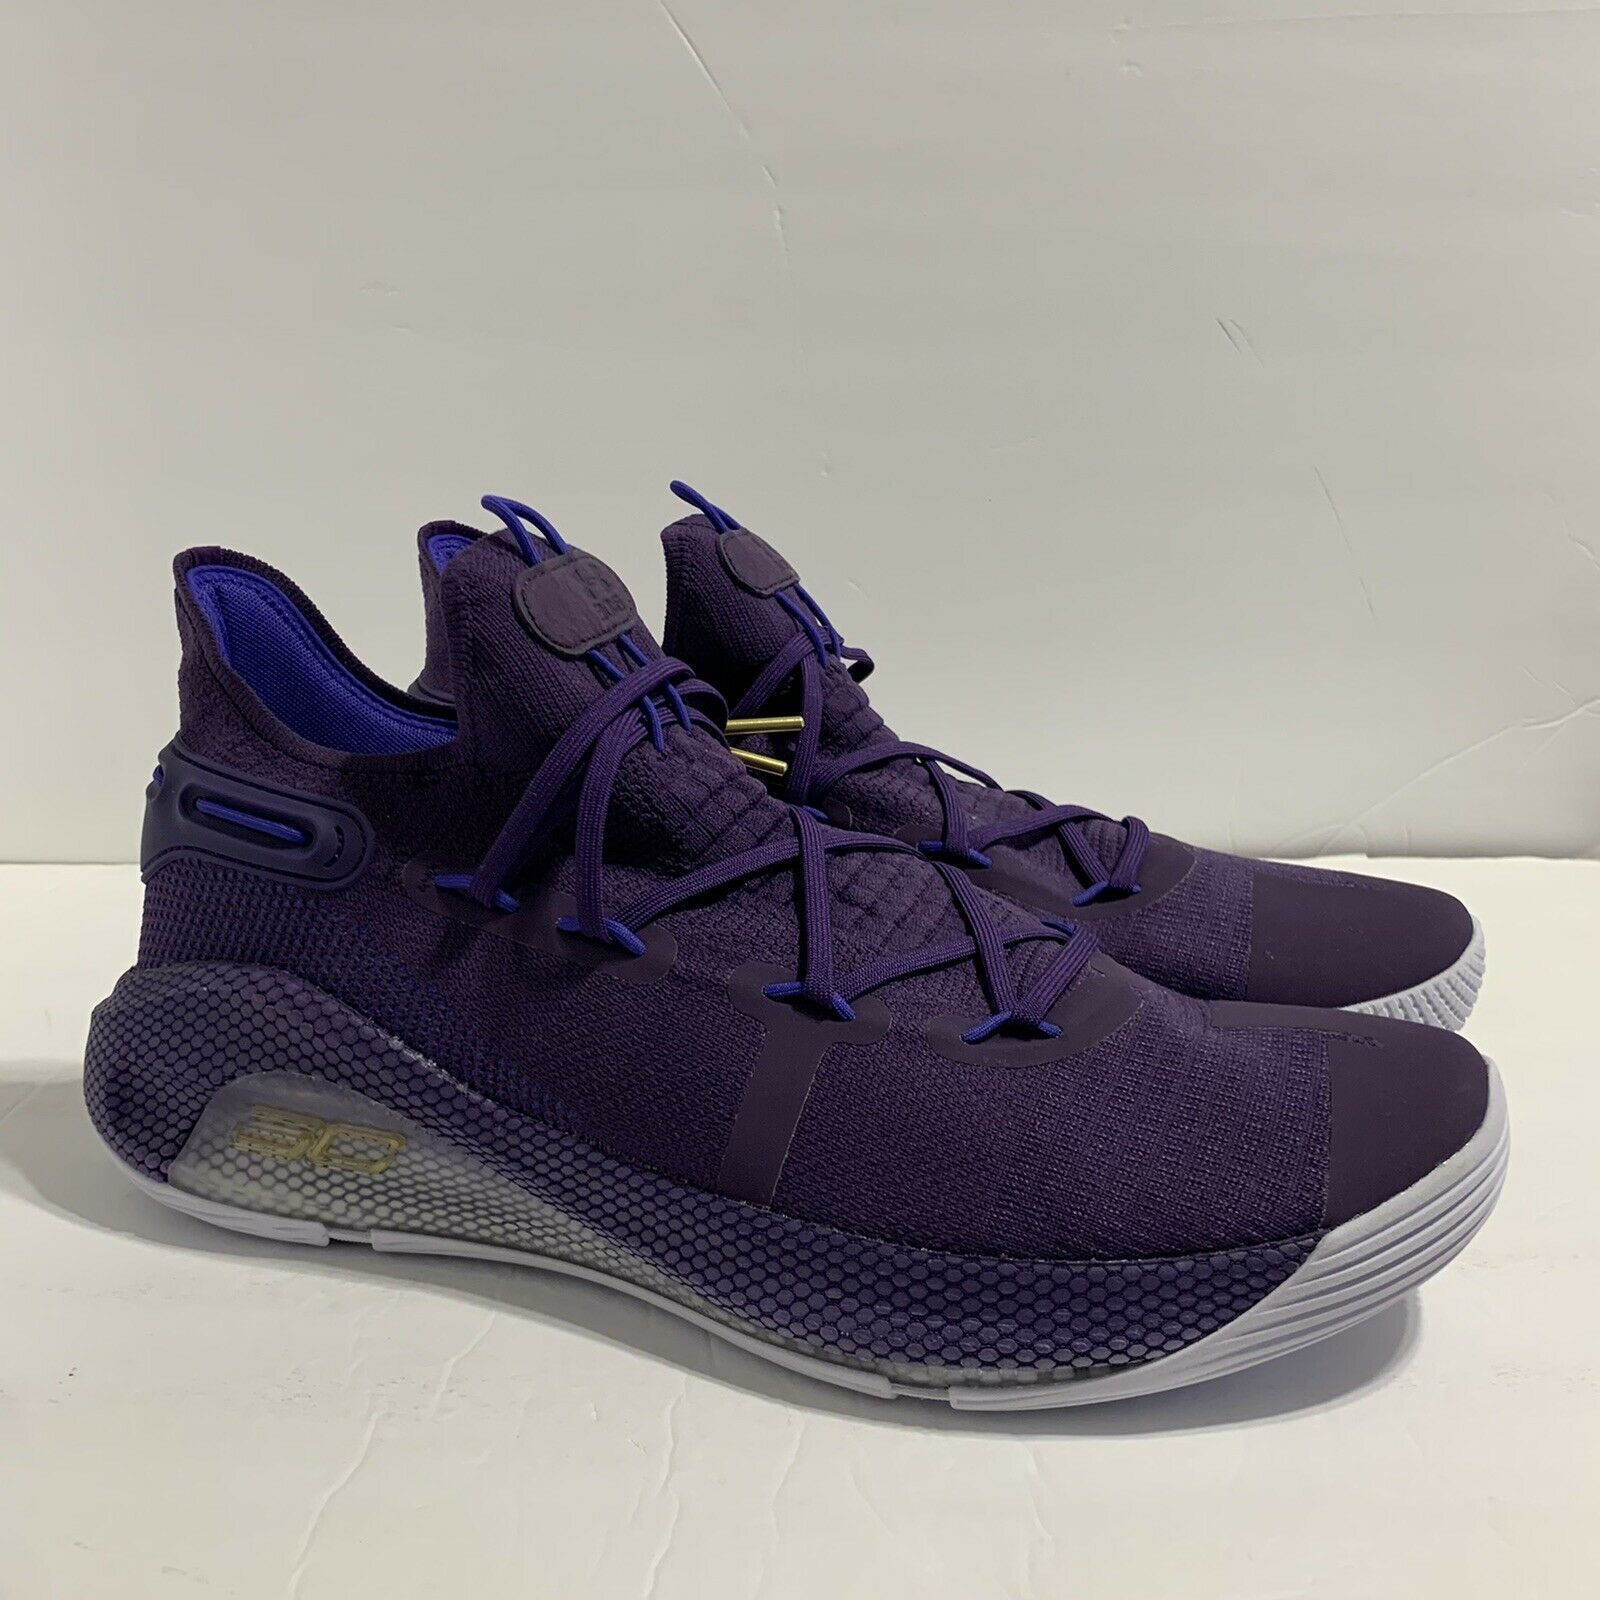 Under Armour Curry 6 Team Violet Basketball Shoes Size 16 3022893-500